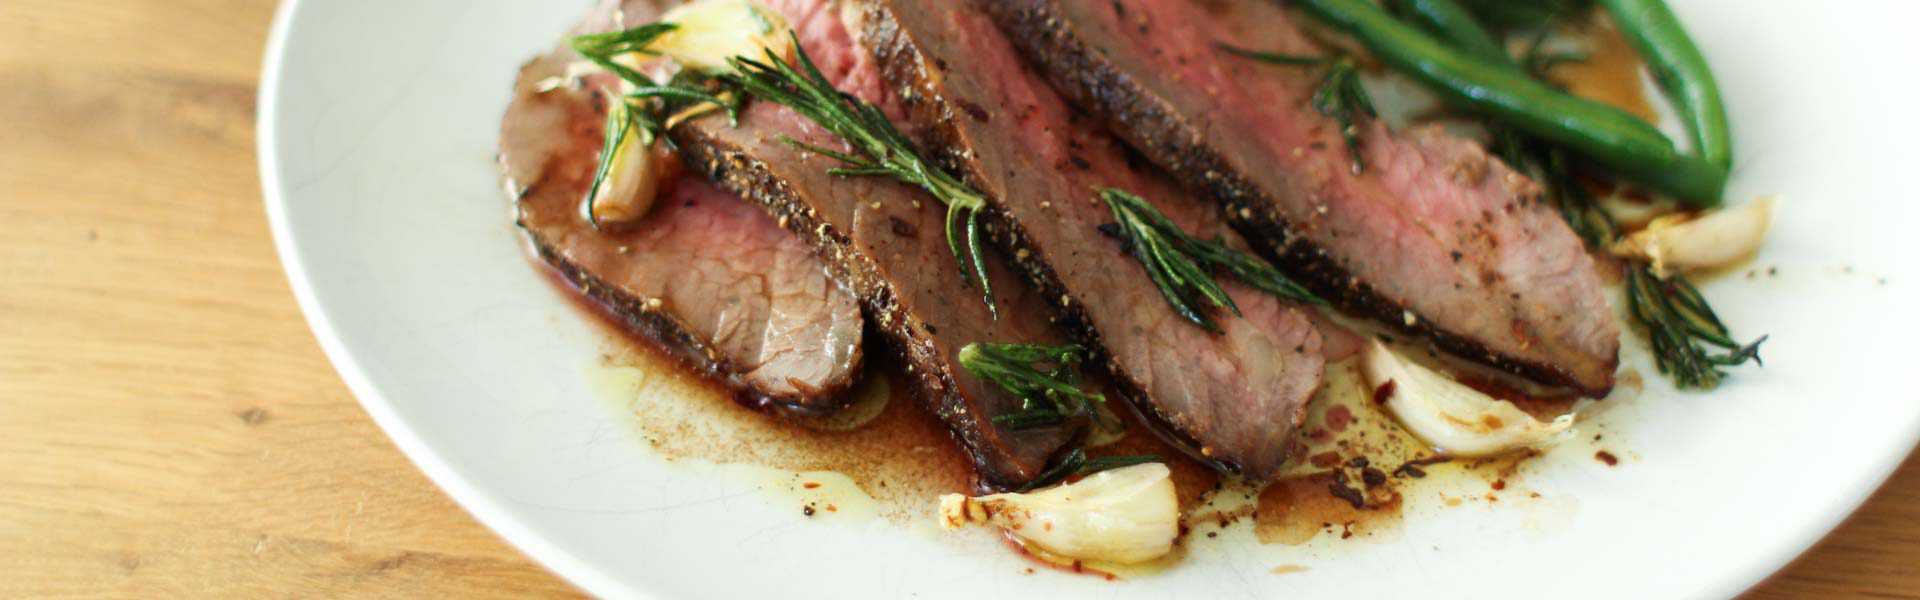 tri-tip roast recipe demonstrates how Sunsweet Ingredients help bind moisture to protein